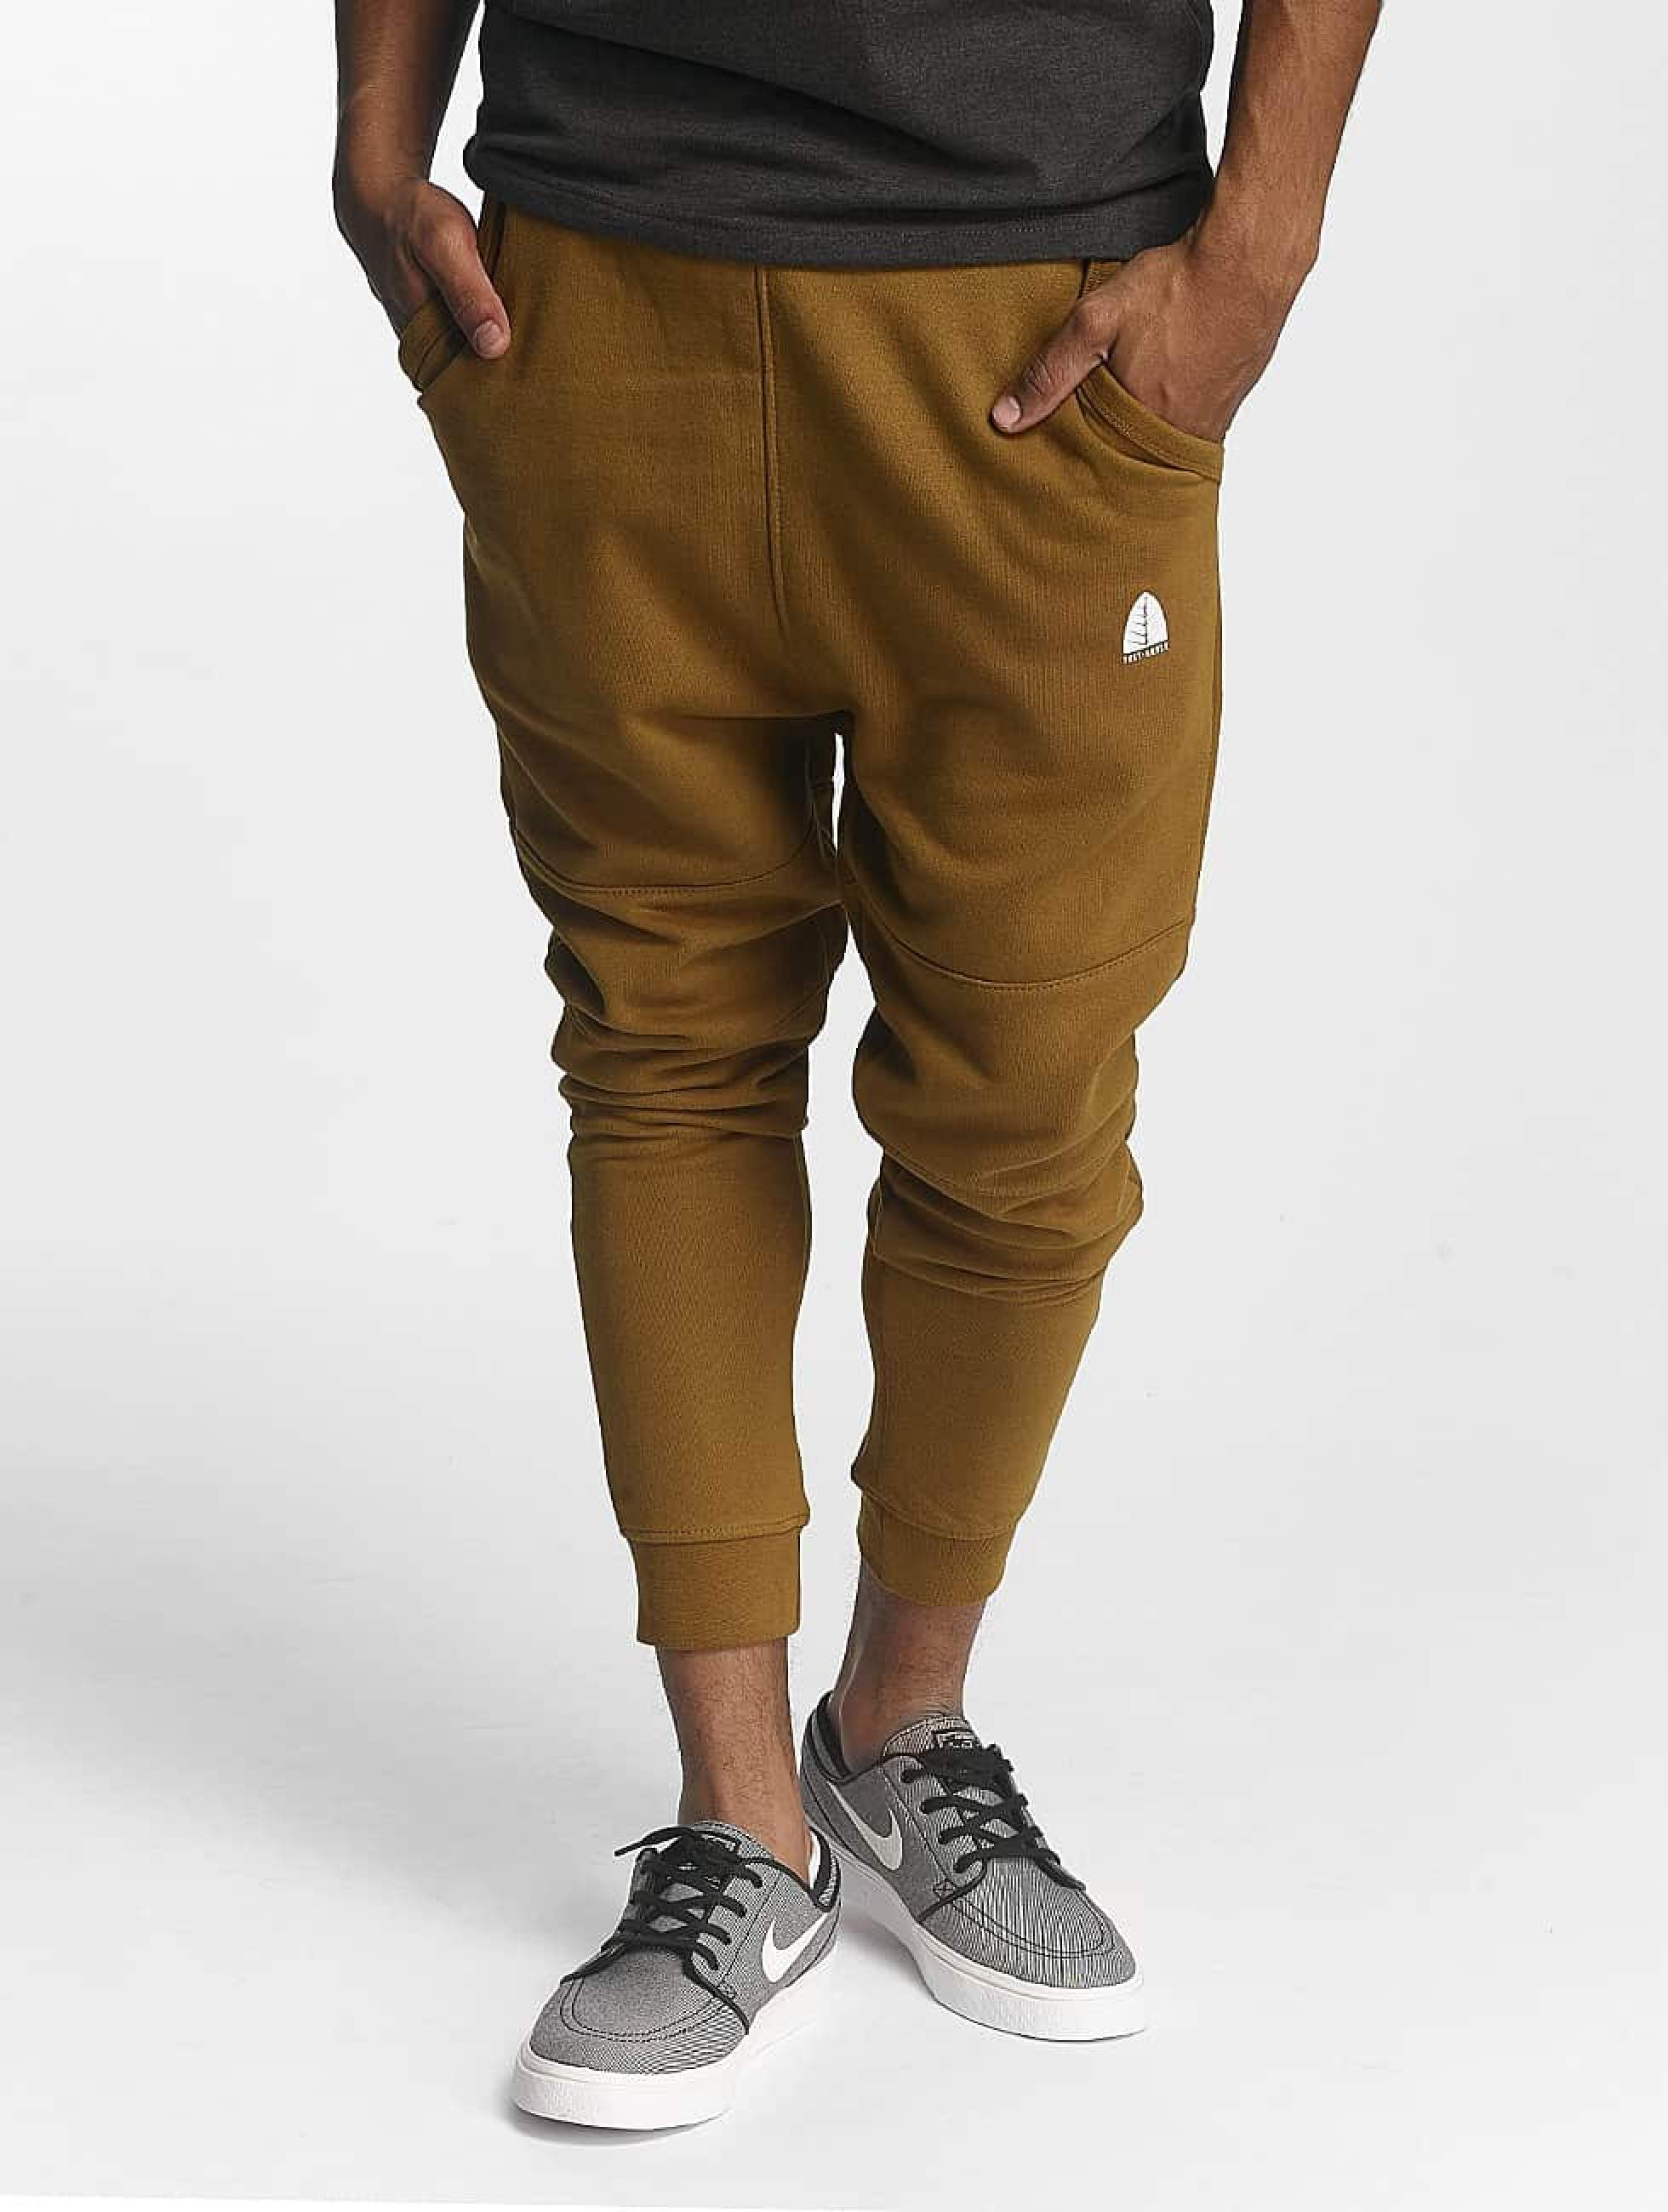 Just Rhyse / Sweat Pant Chilkat in beige 2XL